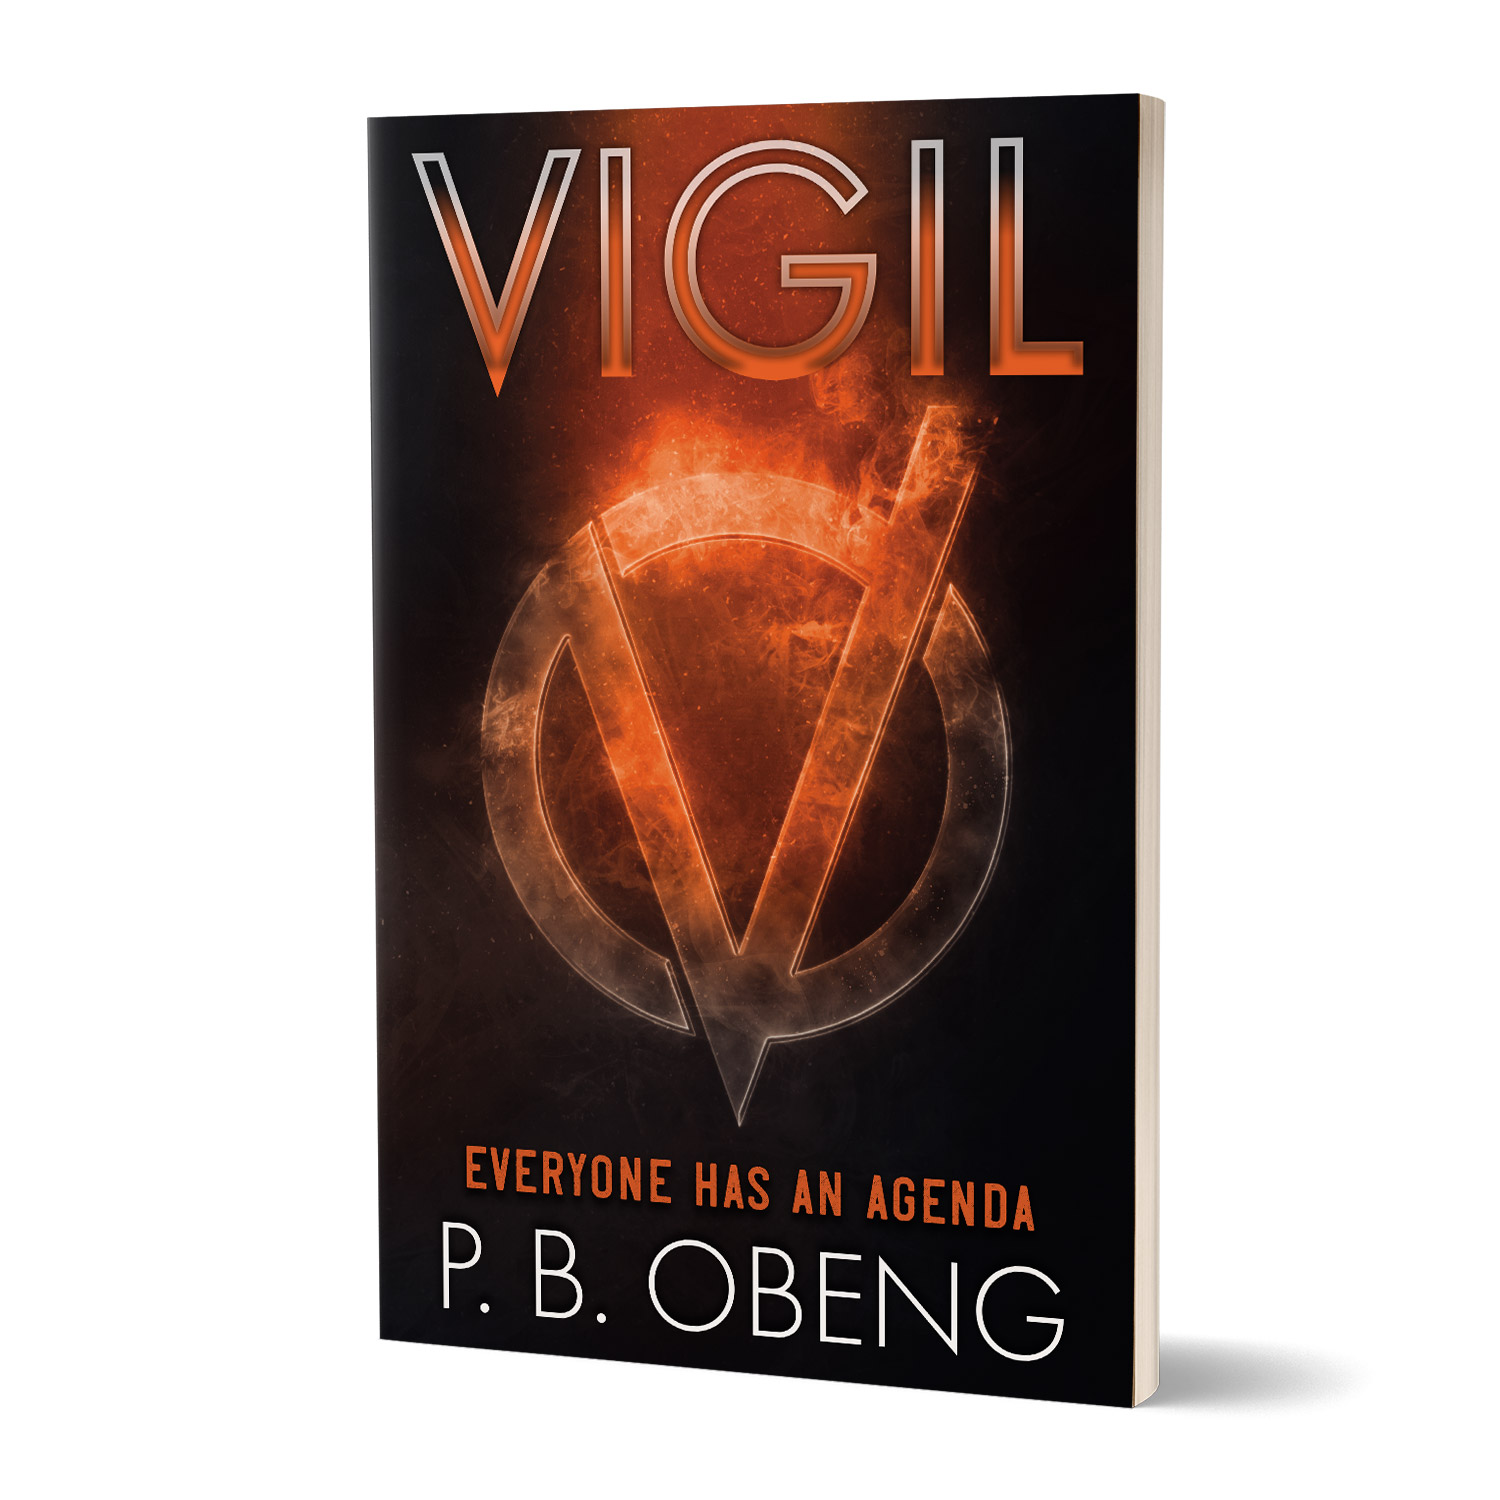 'Vigil' is a superhero-powered sci-fi, by P B Obeng. The book cover and interior were designed by Mark Thomas, of coverness.com. To find out more about my book design services, please visit www.coverness.com.